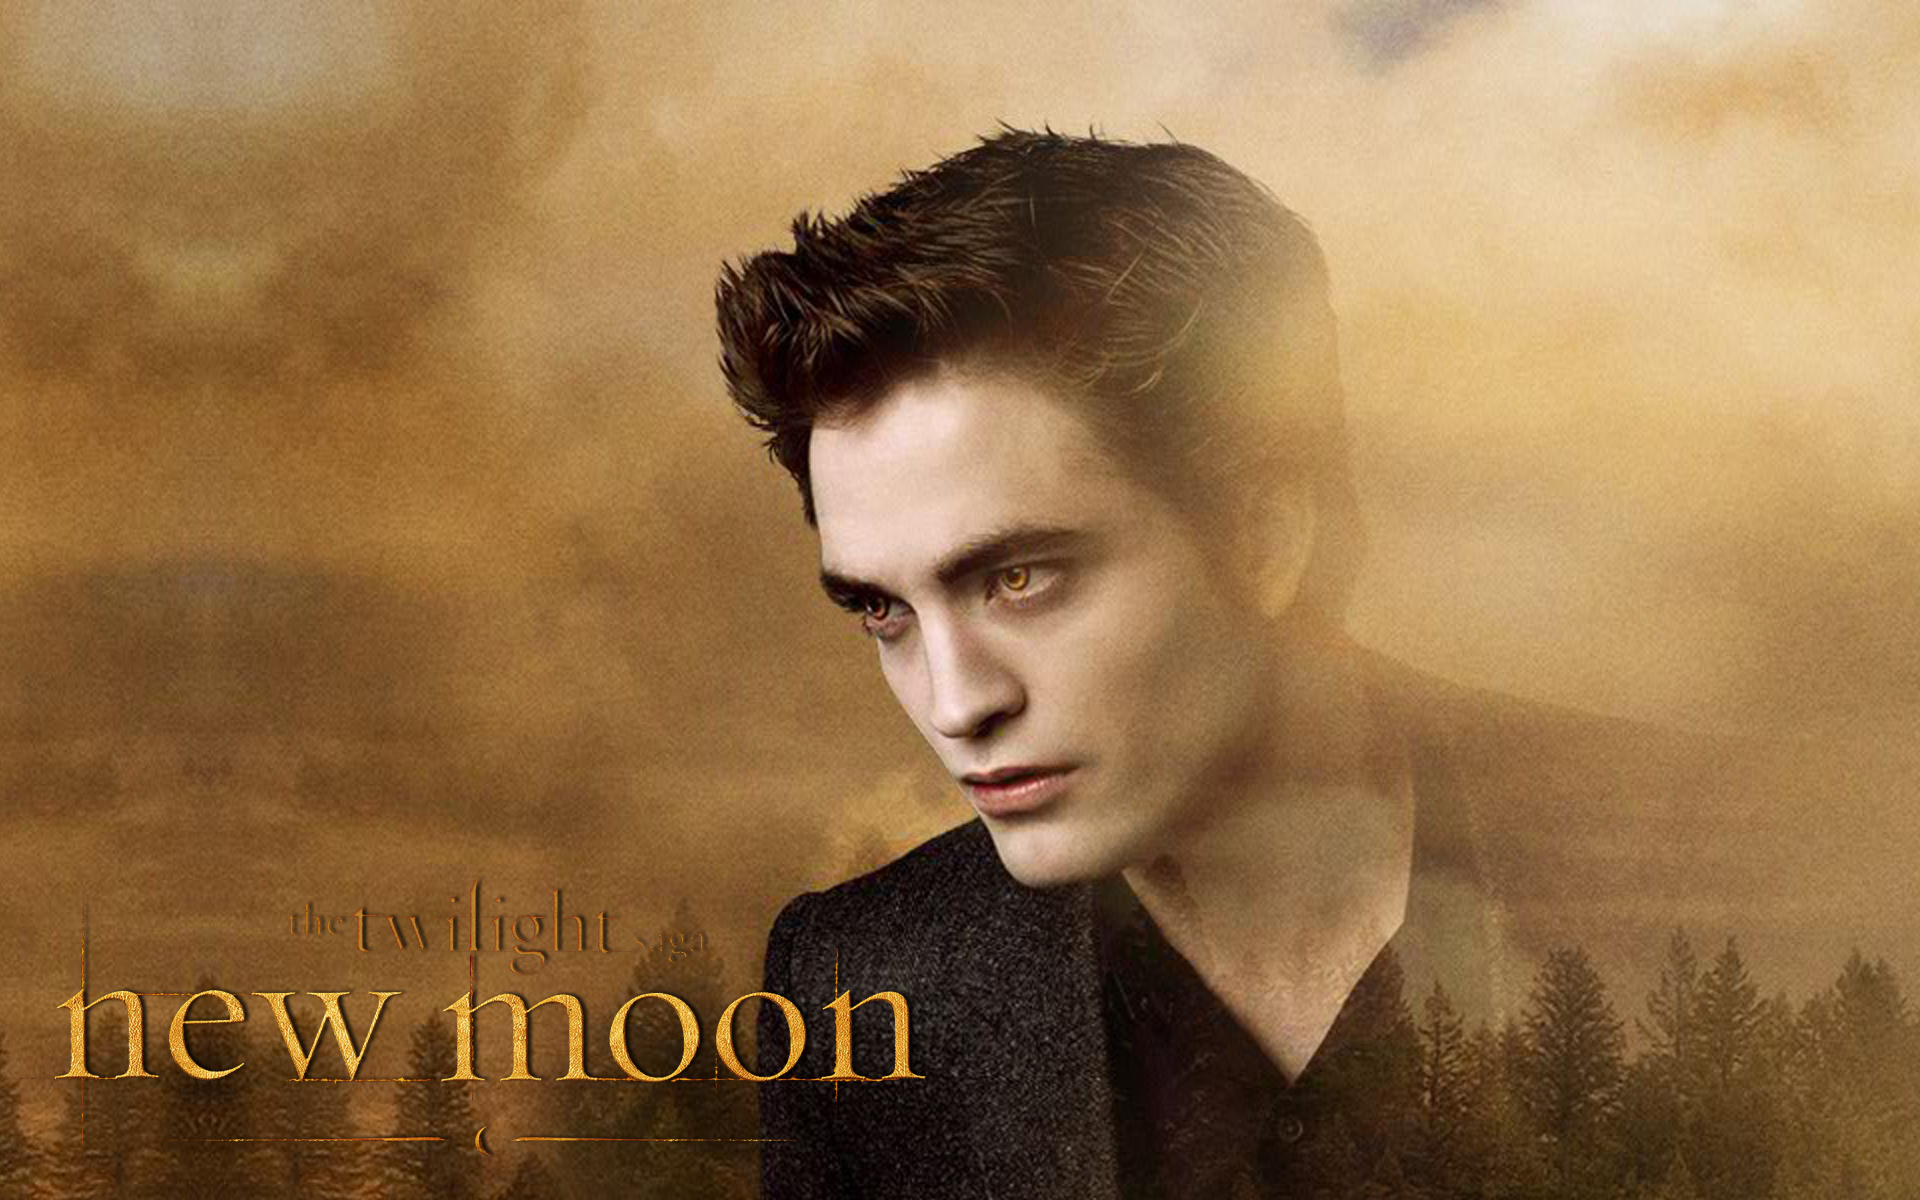 Edward cullen twilighters wallpaper 31003299 fanpop for Twilight edward photos